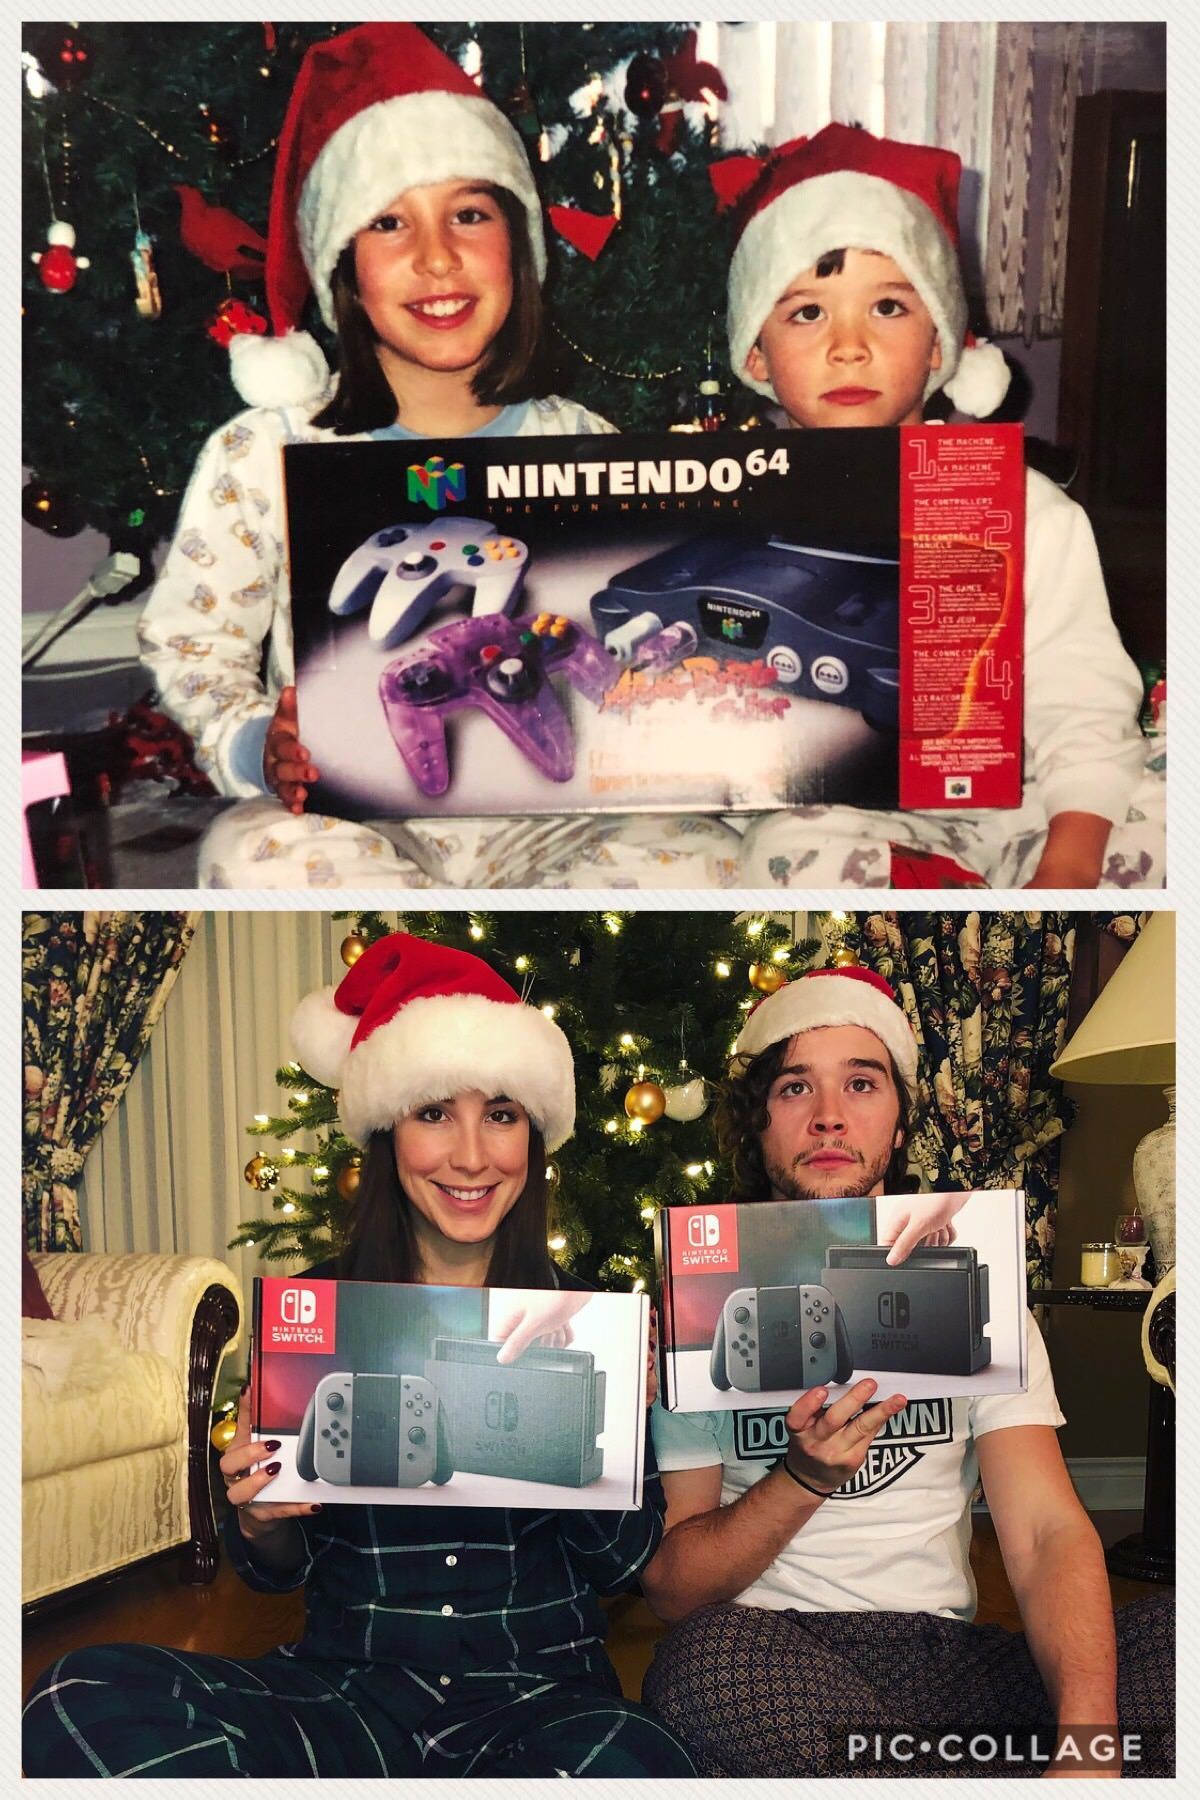 Never too old for gaming! N64 to Switch | gaming | Pinterest ...